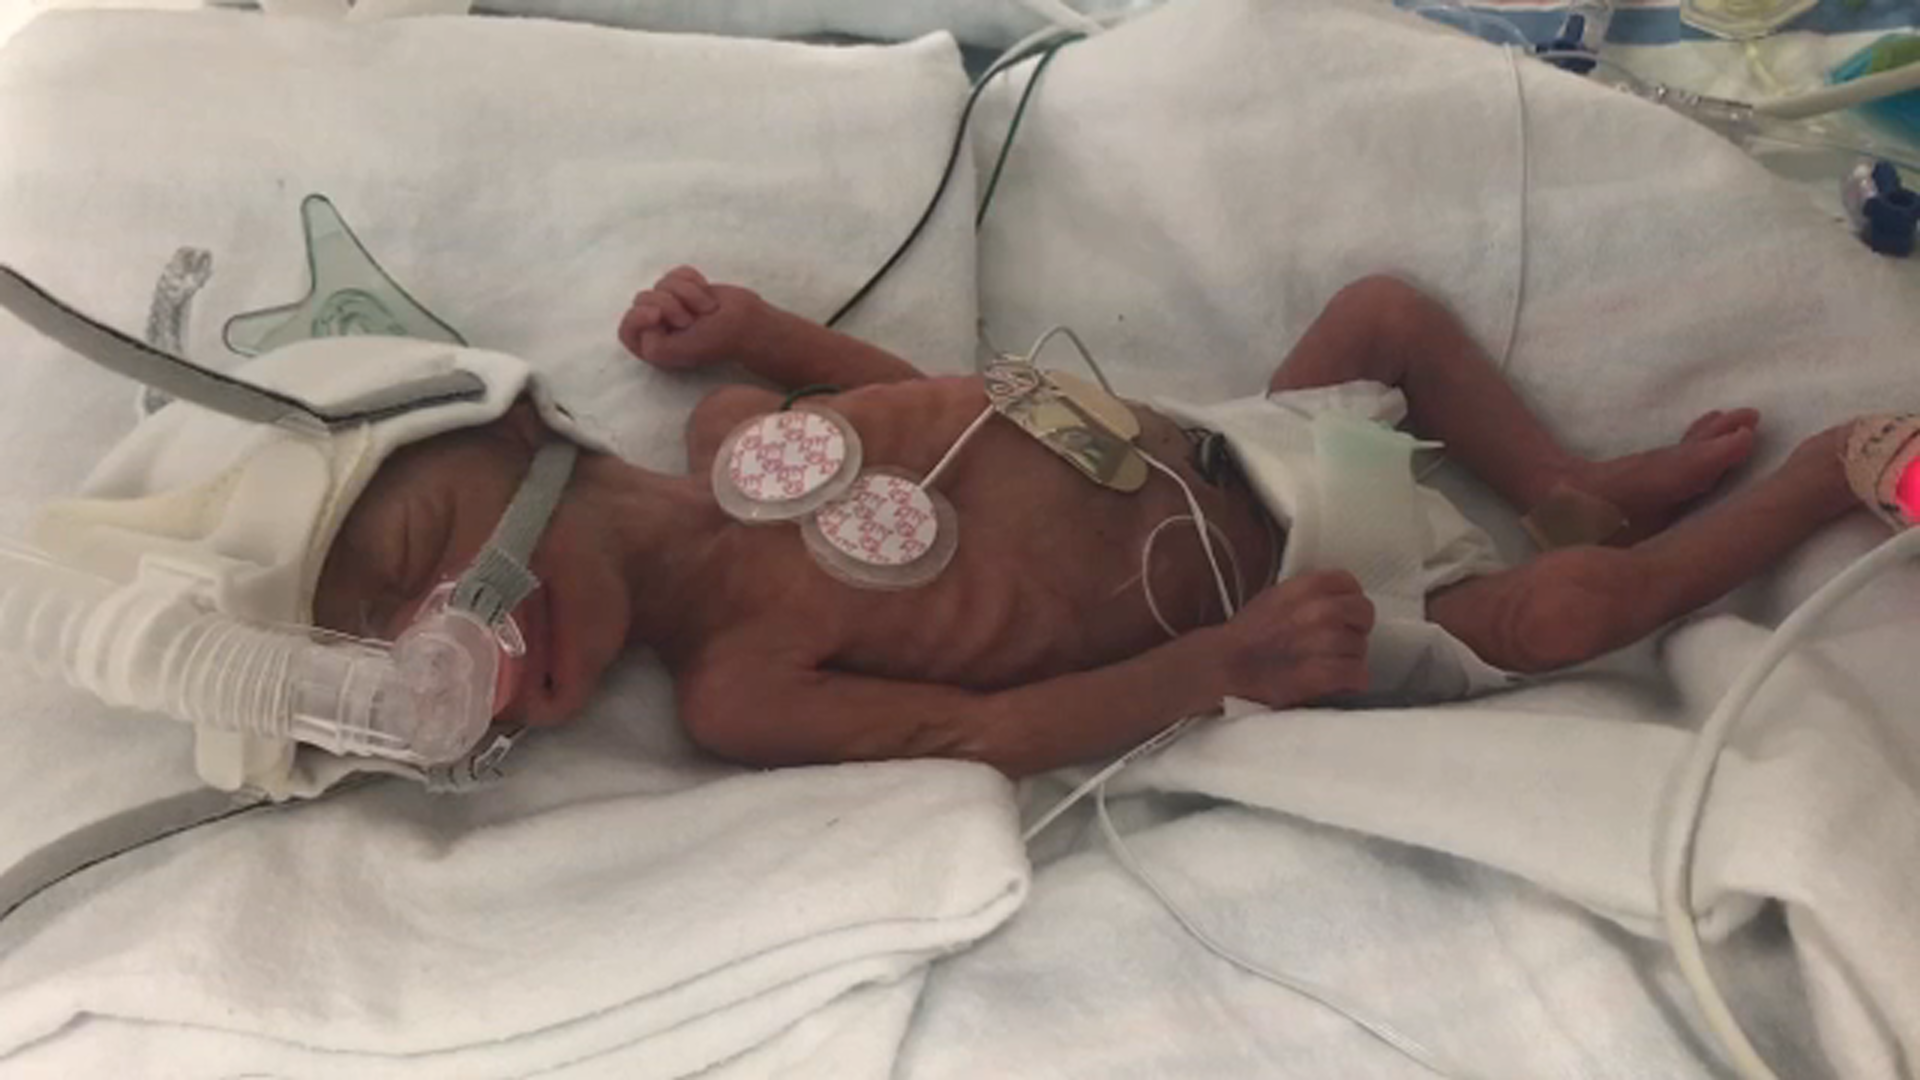 Rodriguez Was Born 13 Weeks Premature And At The Time Mom Jennifer Pena De Mena Received An Emergency C Section She Size Of Average Adults